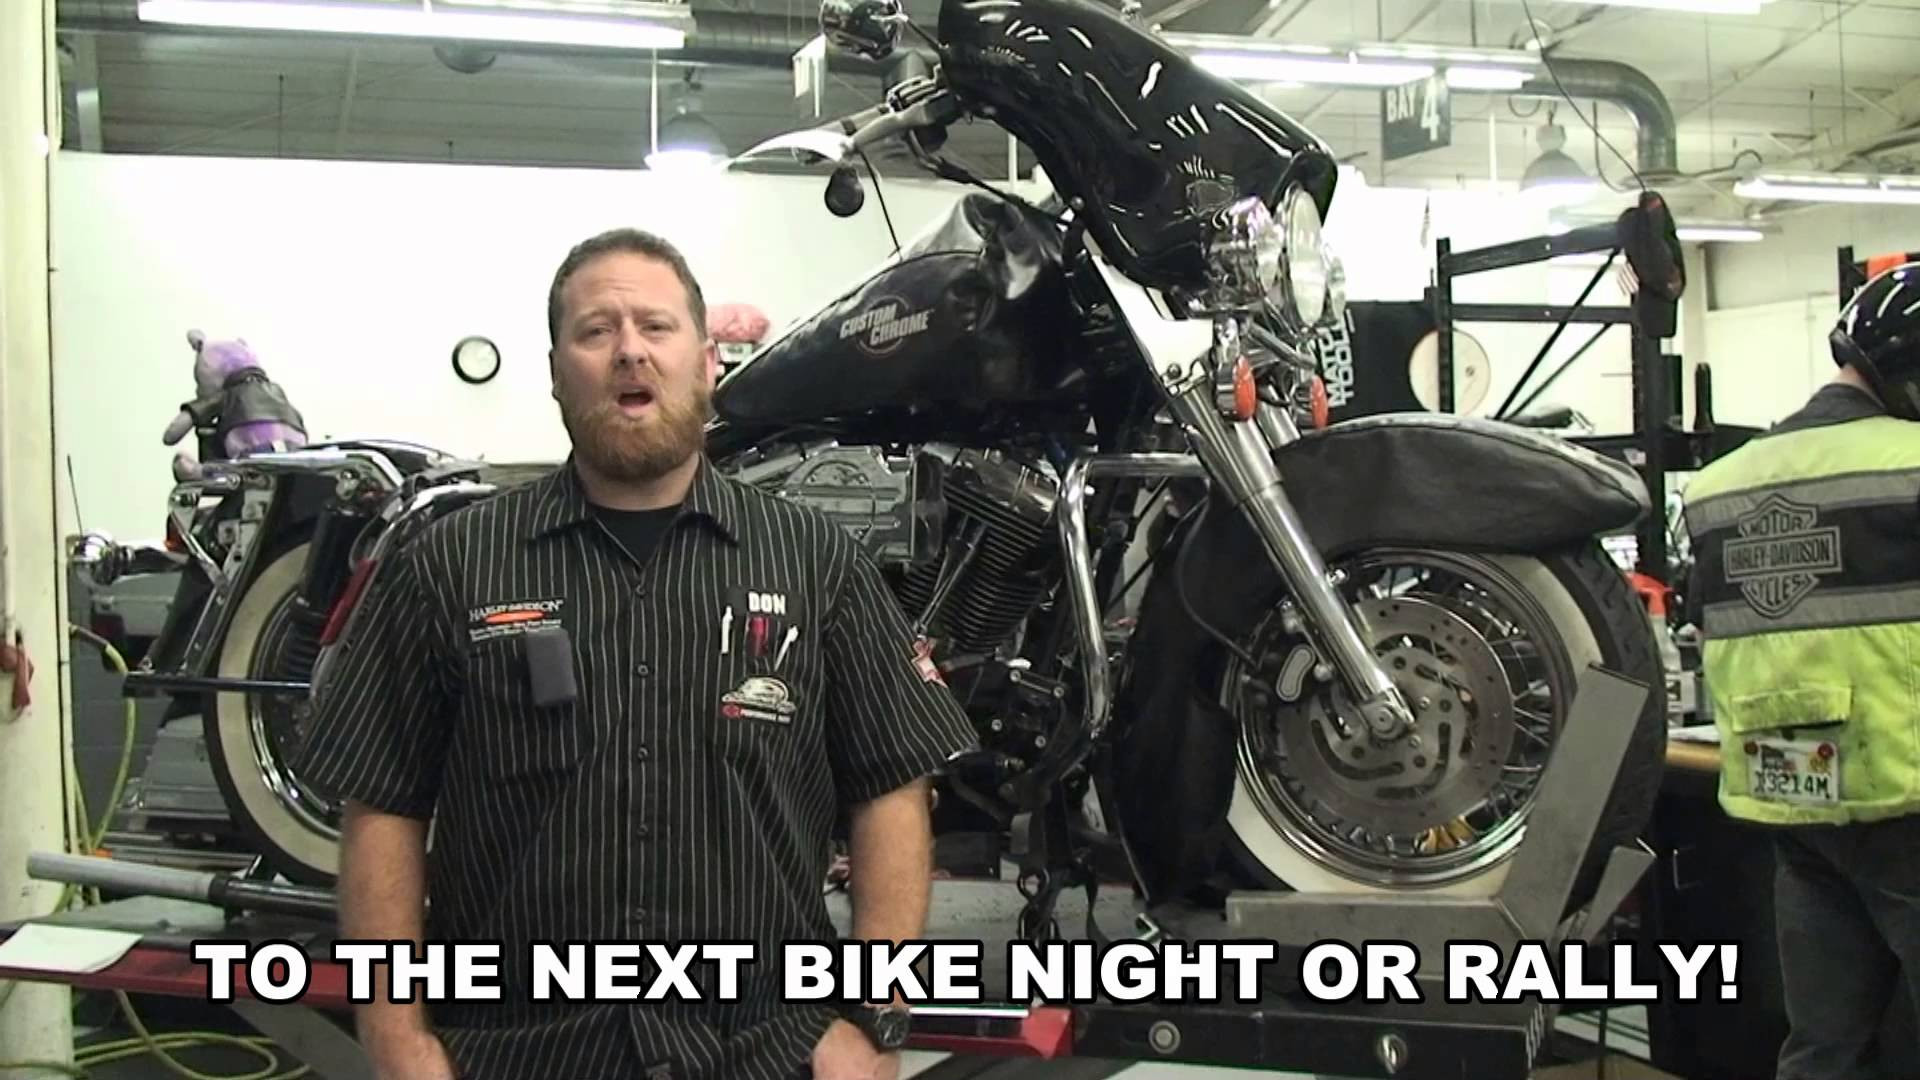 Harley Davidson – Pre Ride Inspection – New Port Richey, FL